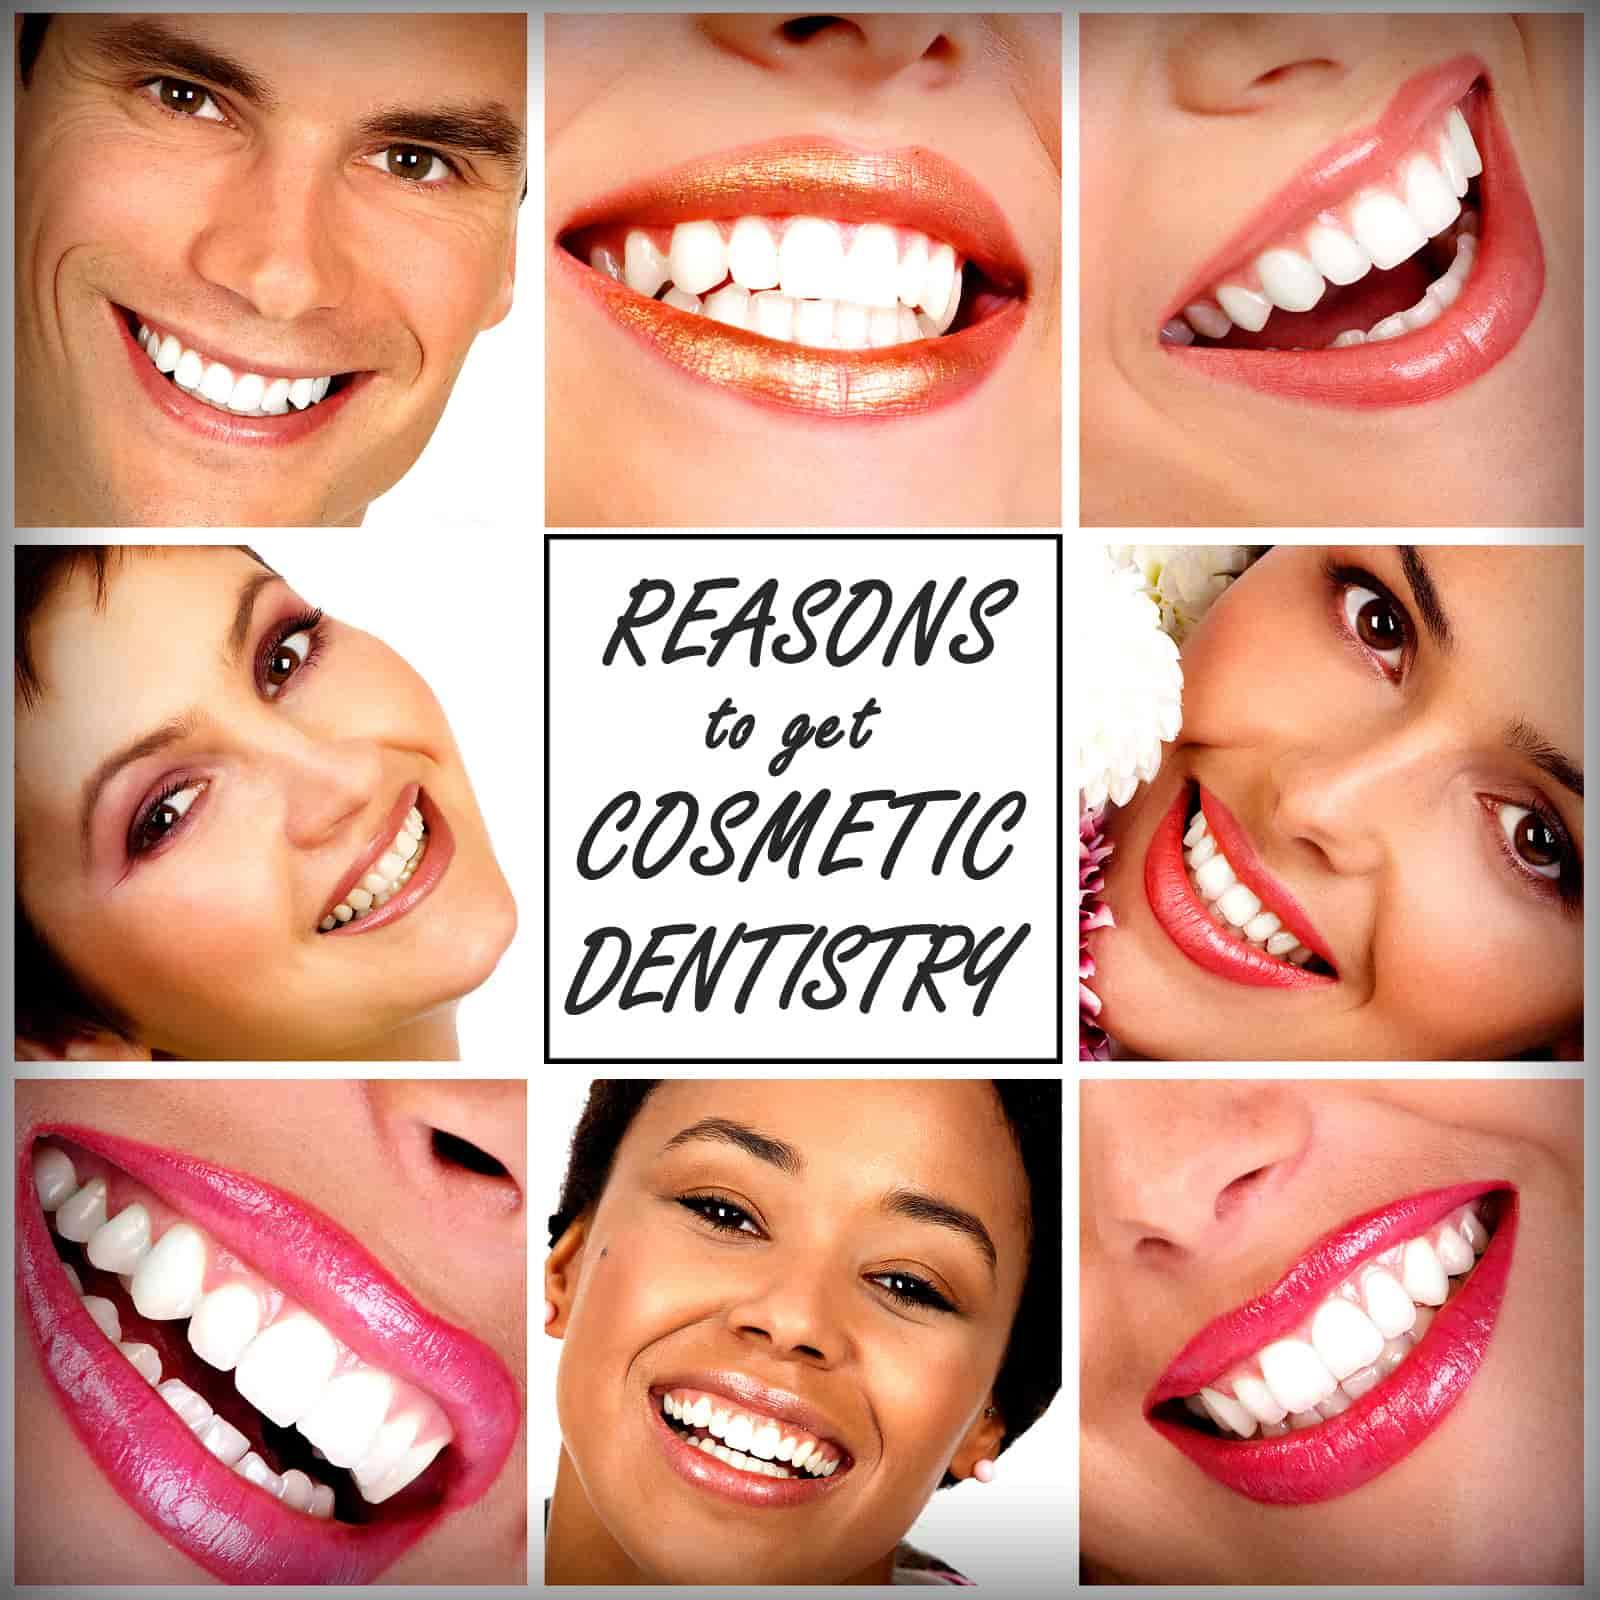 Why Get Cosmetic Dentistry